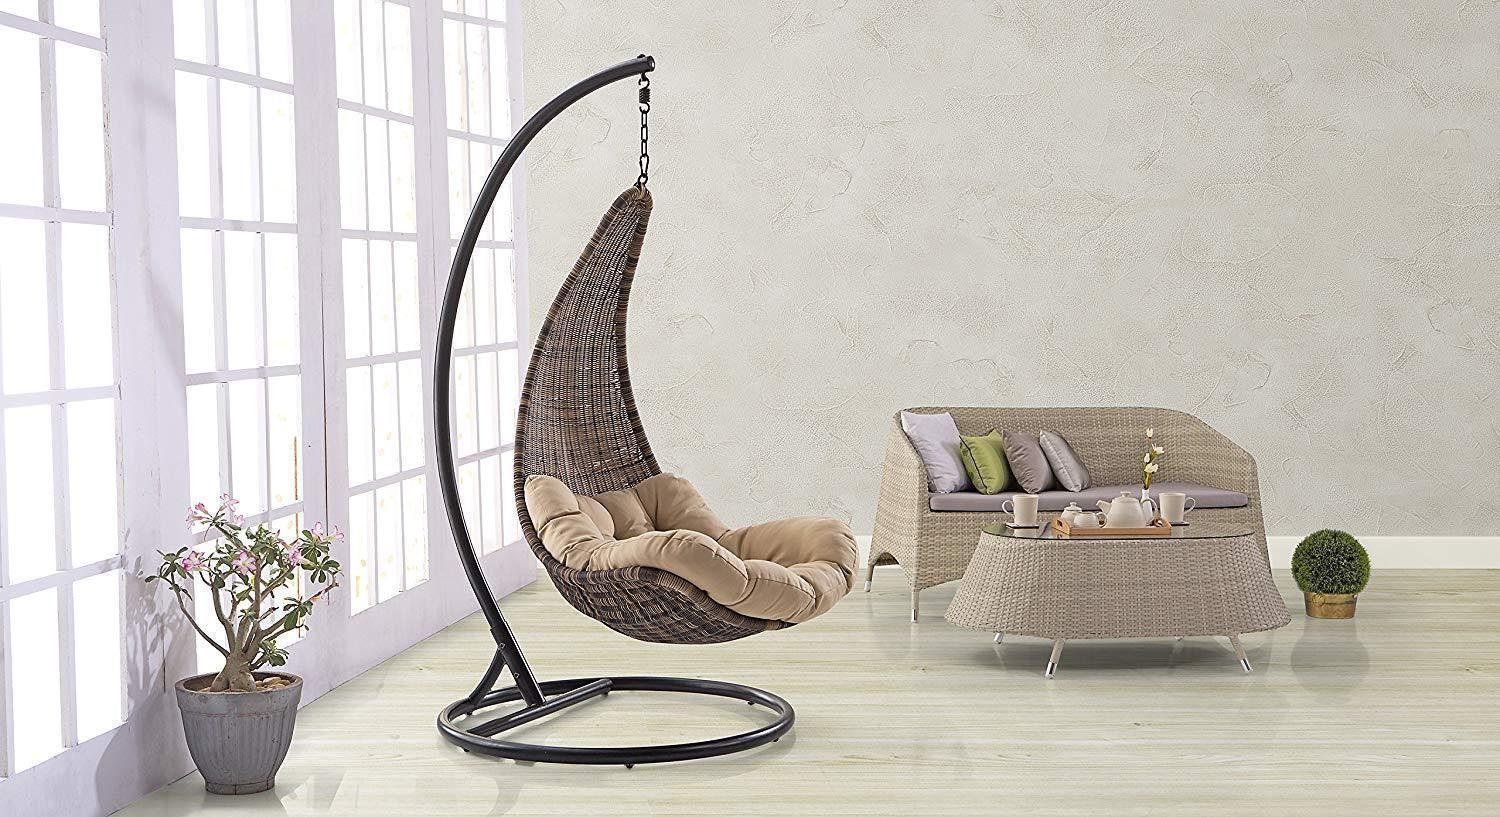 Furniture - Insignia  Outdoor-Balcony Swing Chair With Stand (Brown)